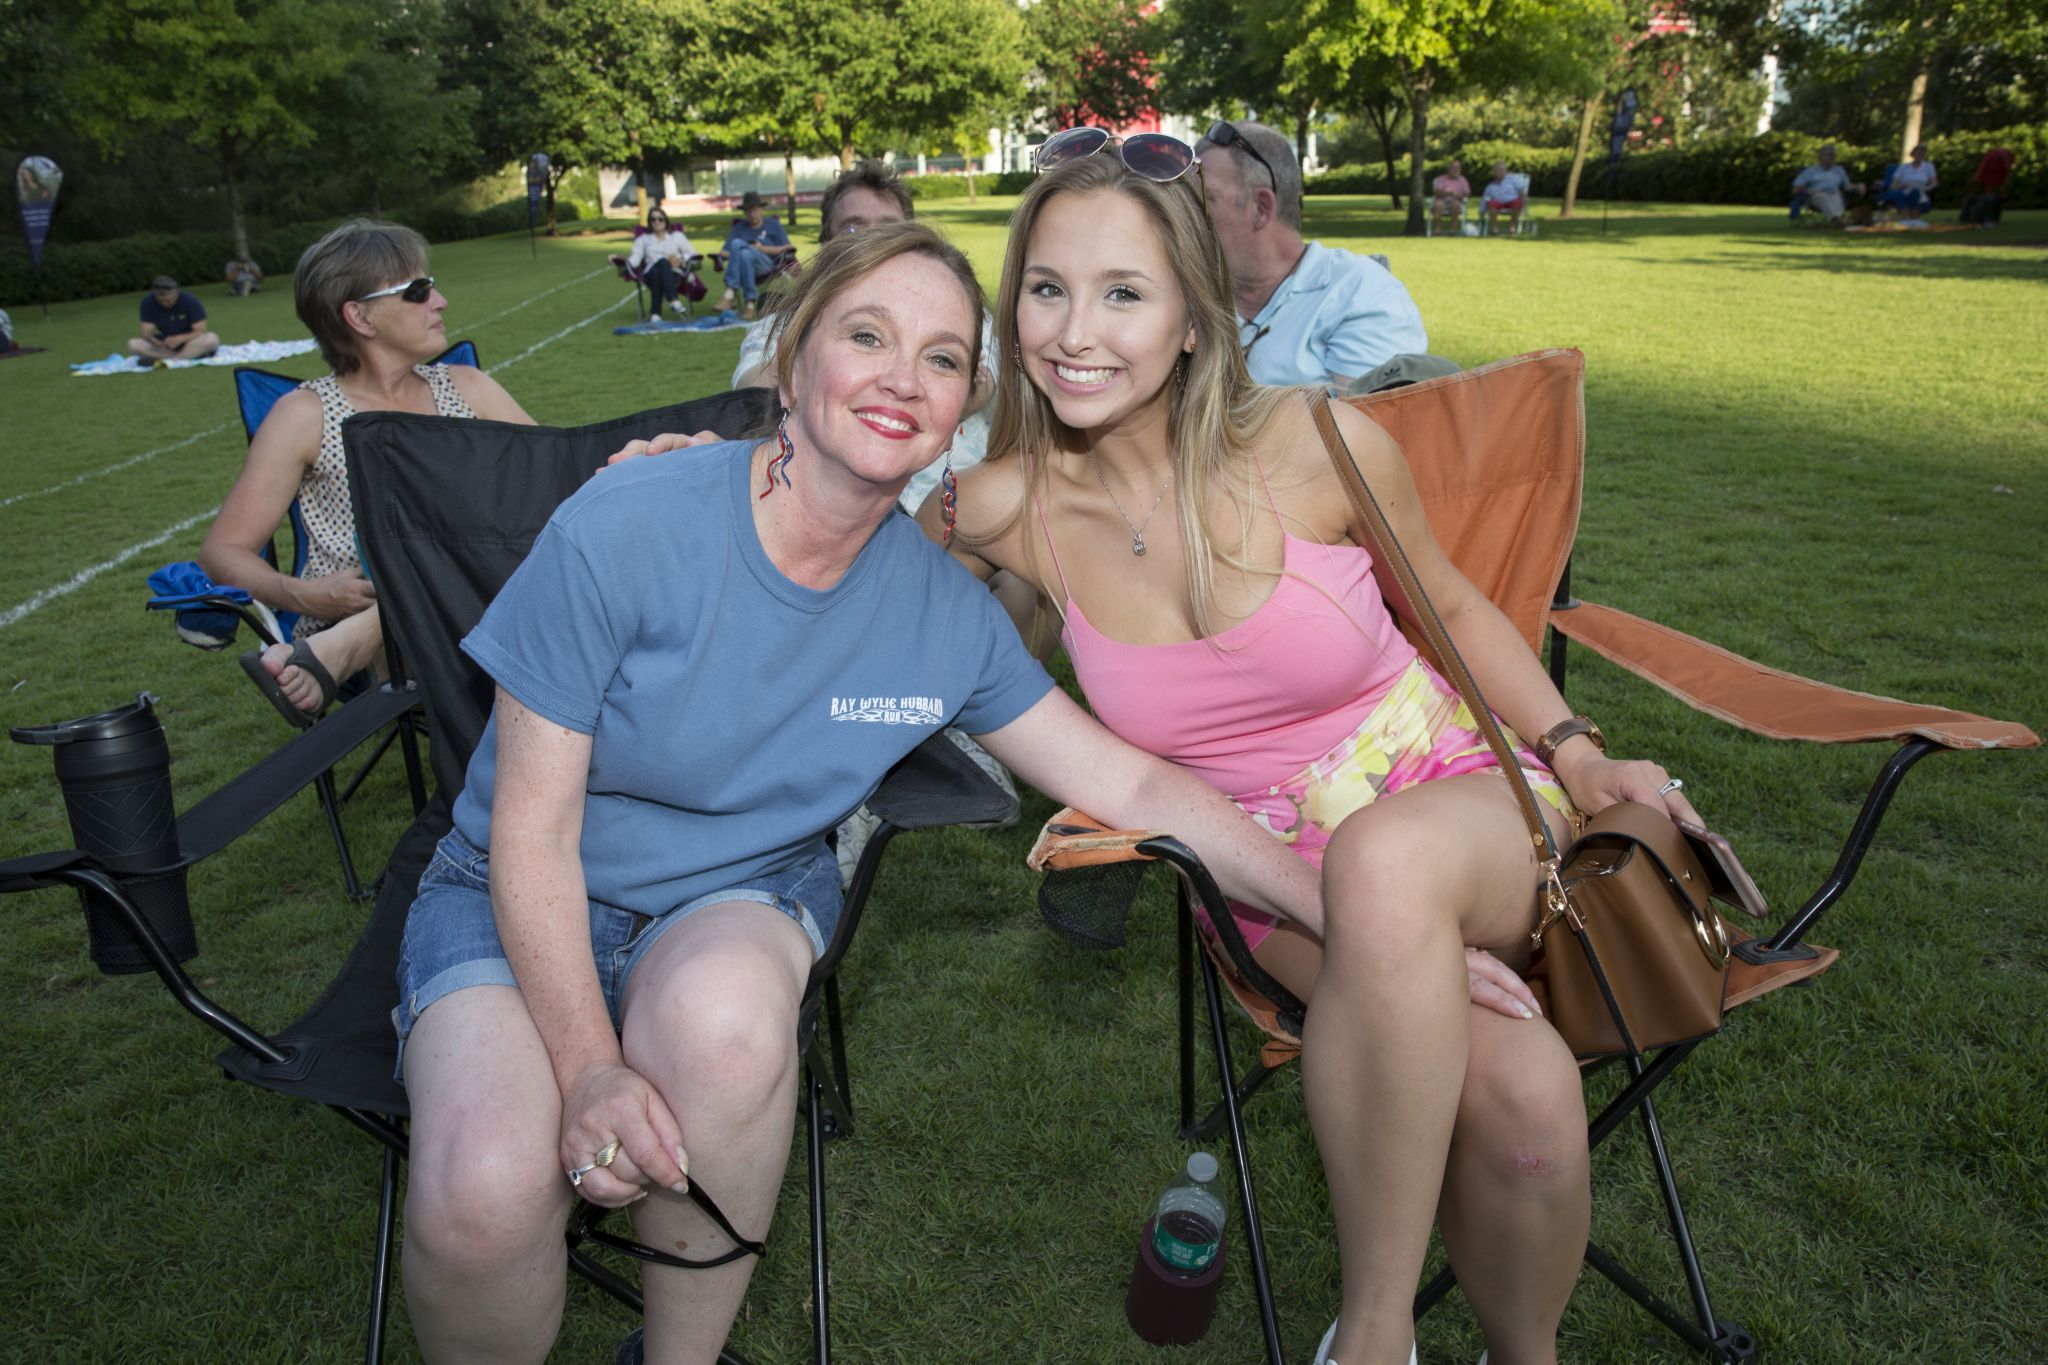 UHD Concert Scenes: Check out best images of Ray Wylie Hubbard and James Steinle crowd